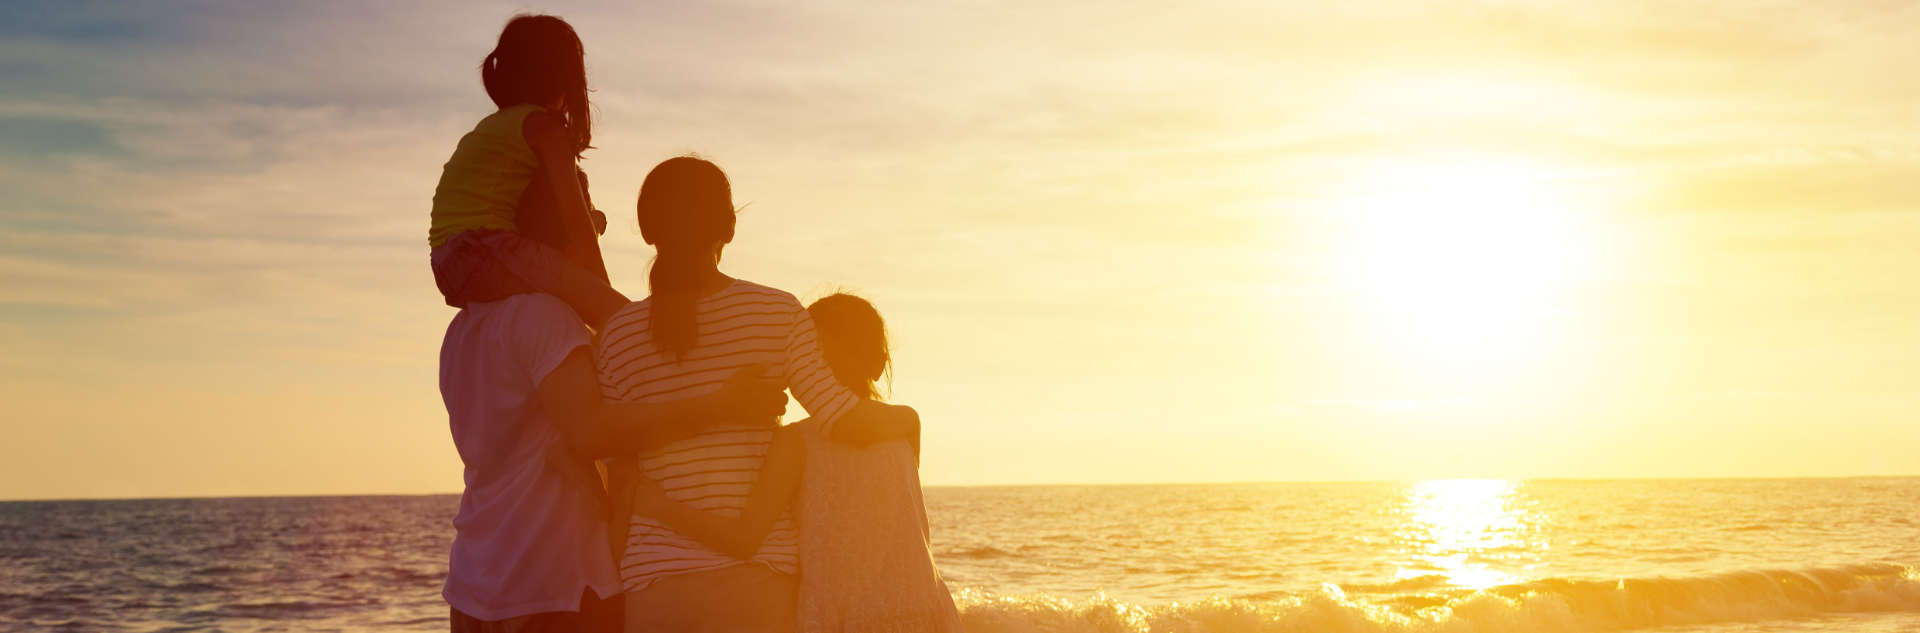 couple and their two children watching the sunset at the beach